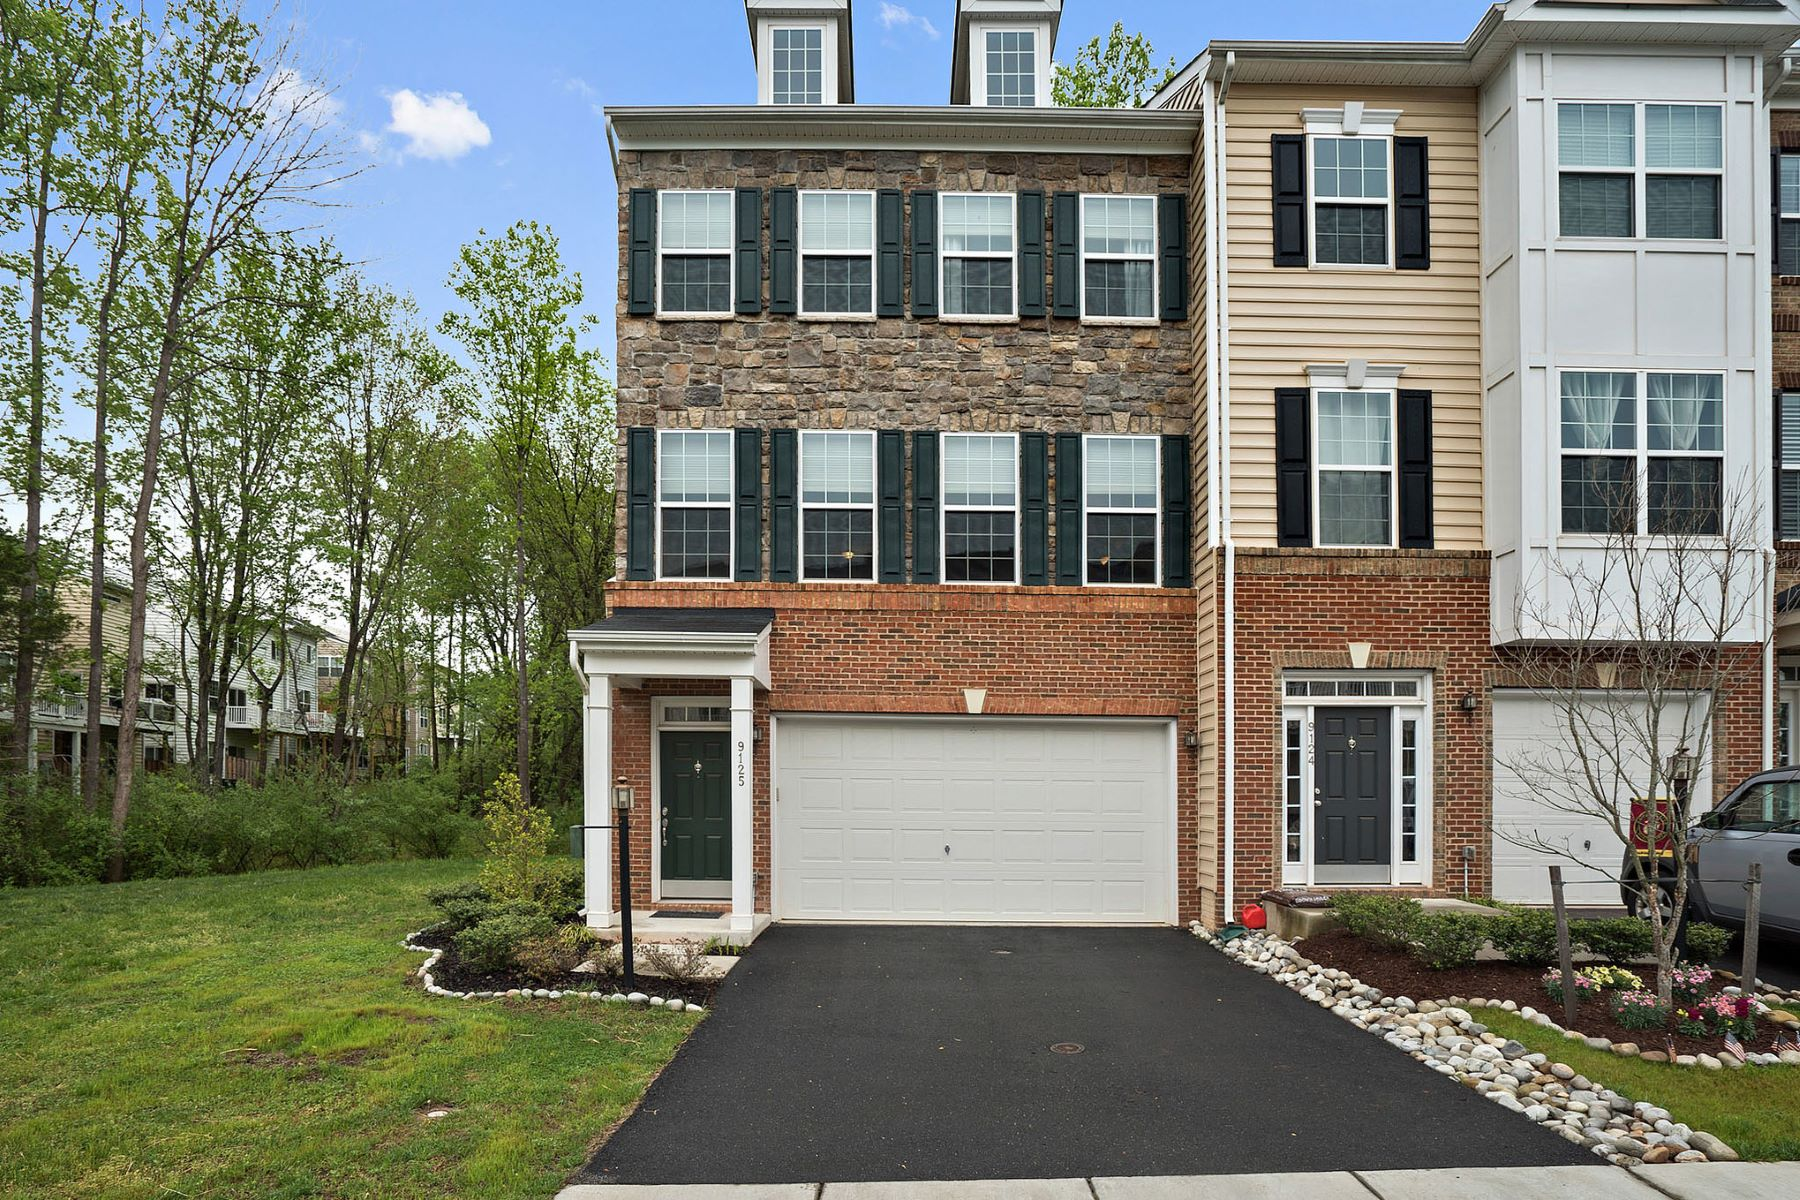 Townhouse for Sale at Jefferson Court 9125 Jefferson Ct Manassas, Virginia 20111 United States